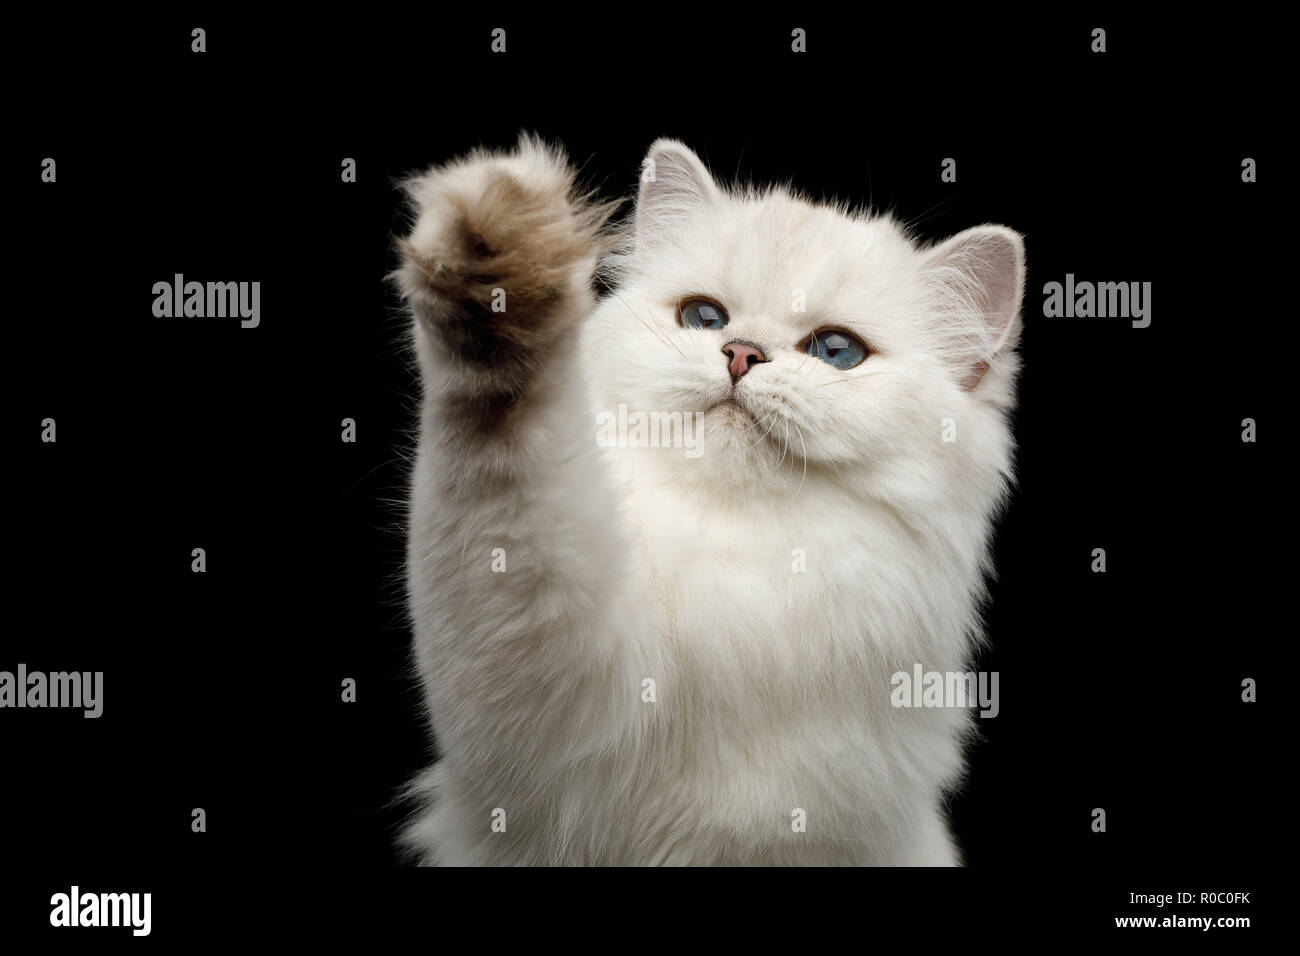 Portrait of Furry British breed Cat White color with Blue eyes, Raising paw on Isolated Black Background, front view - Stock Image